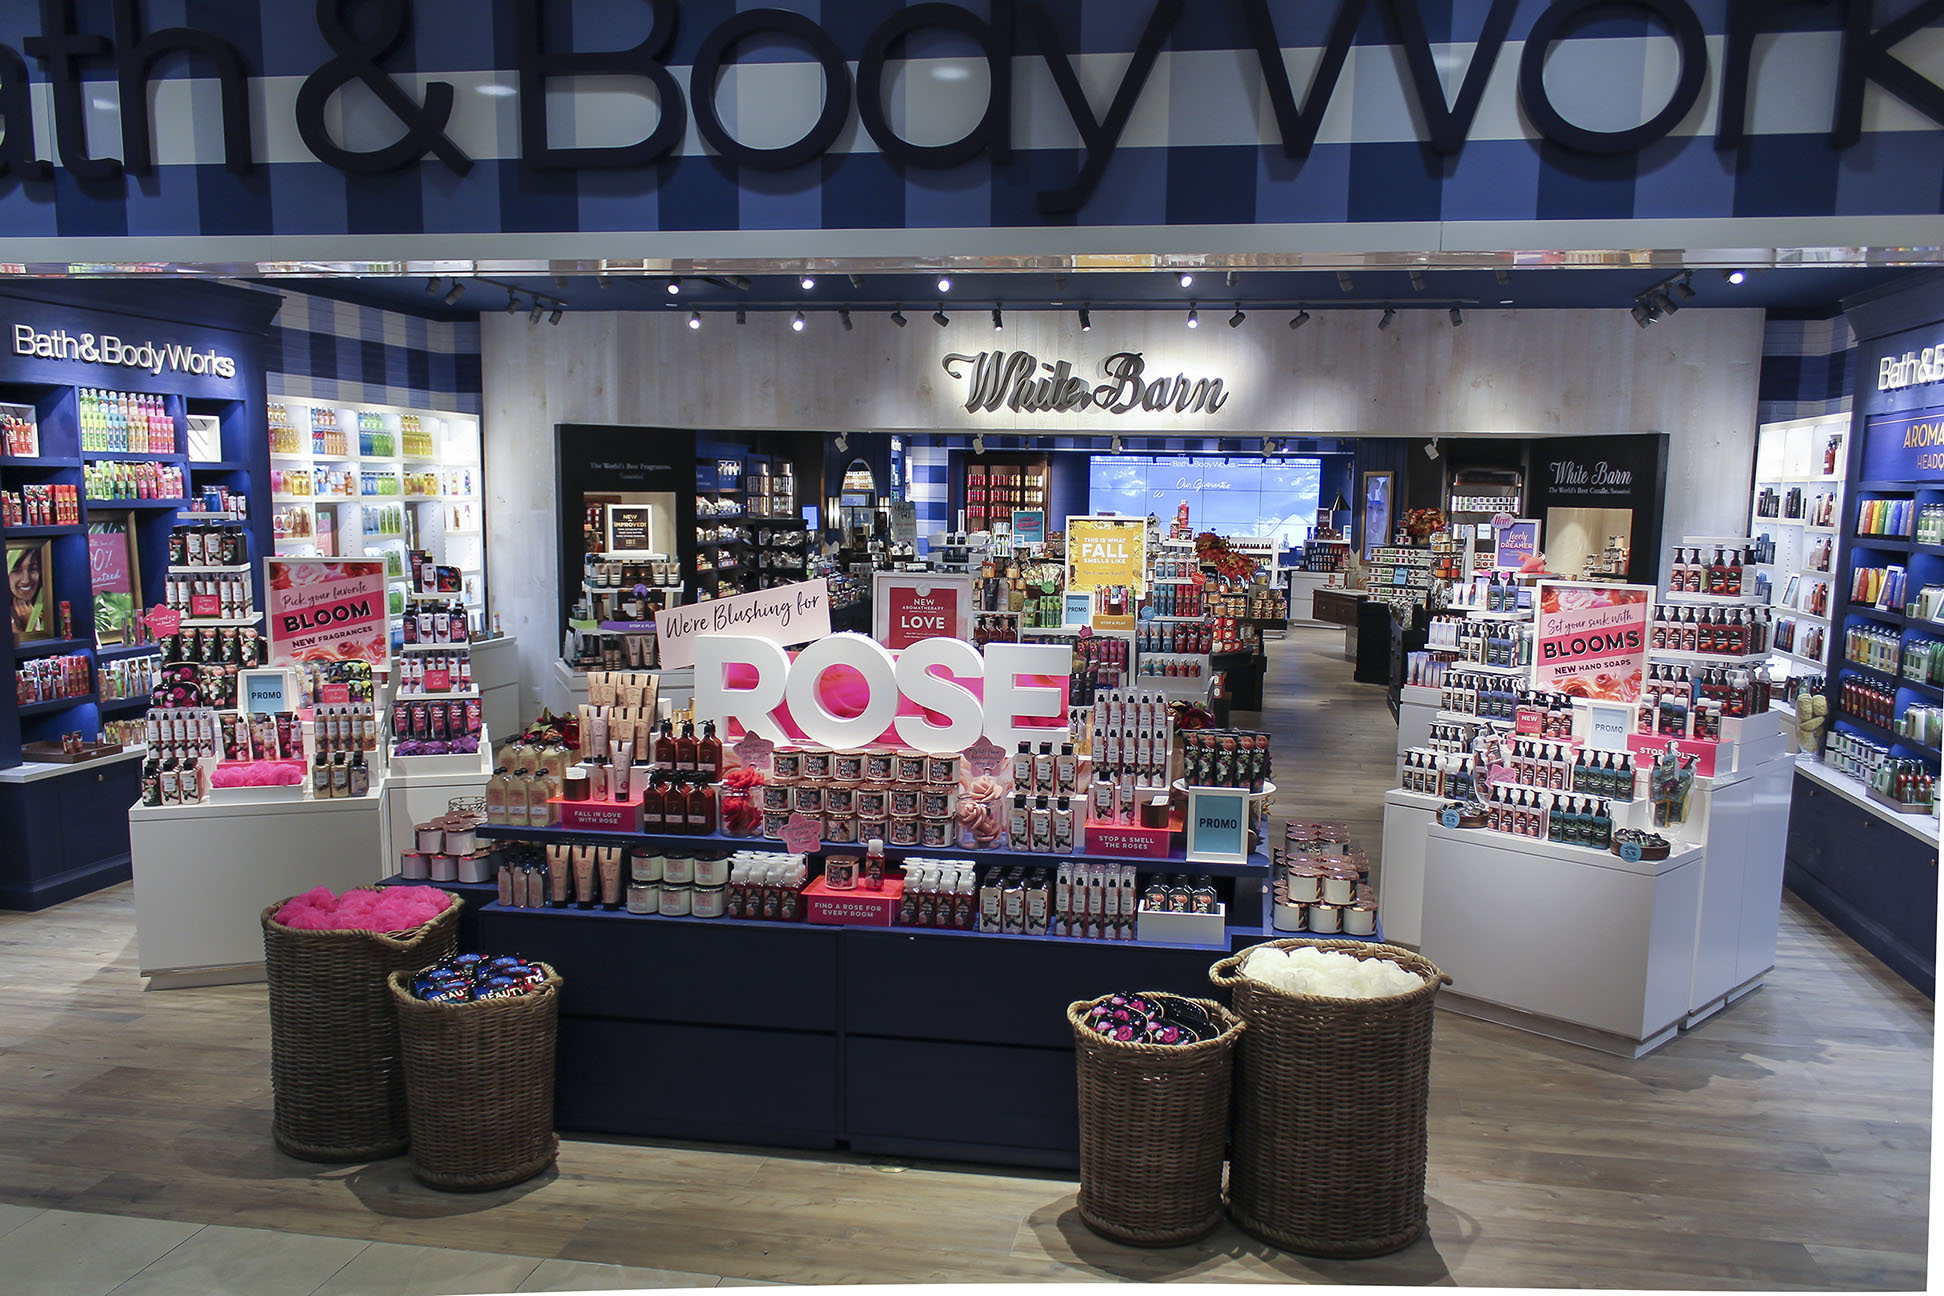 In Store Launch of Rose fragrance across body care and home fragrance.